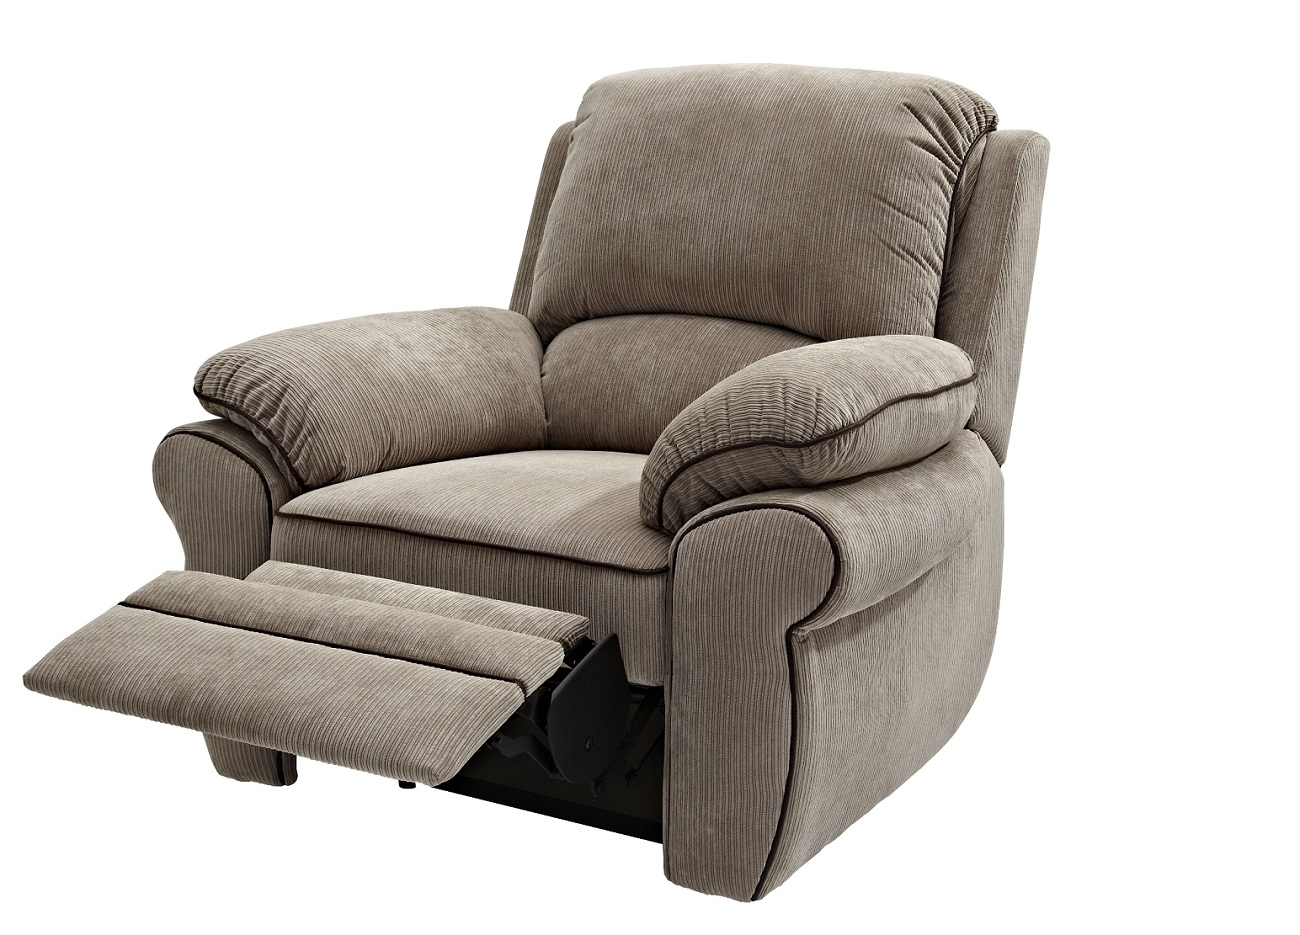 Fabric Recliner Chair  bangkokfoodietourcom